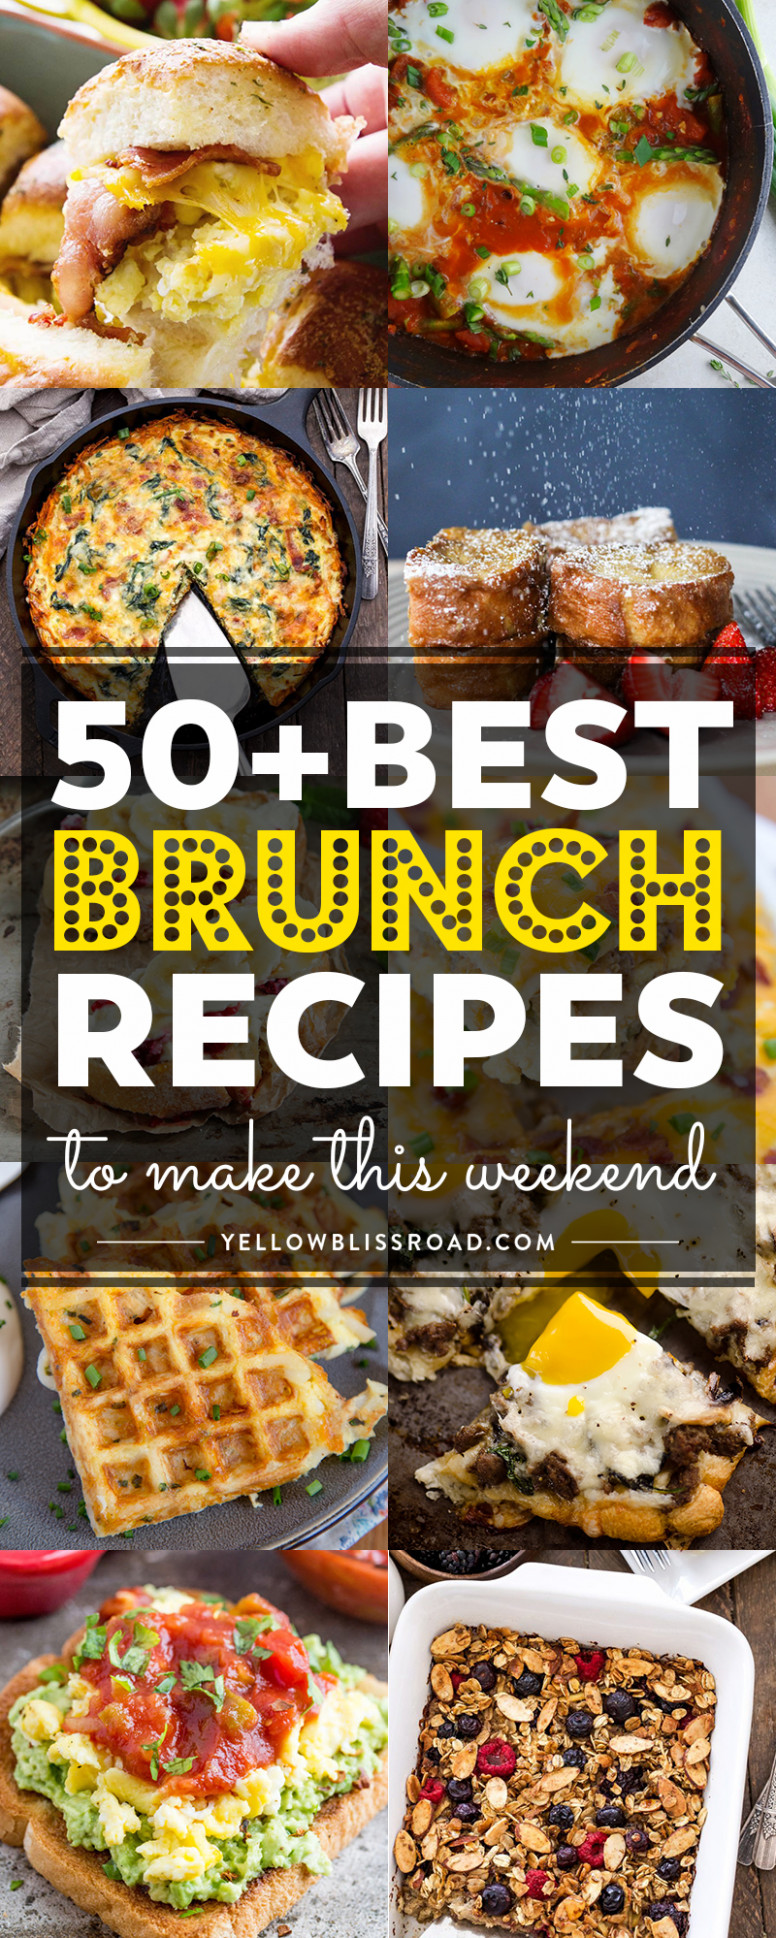 12 of the Best Brunch Recipes to Make this Weekend - recipes guests dinner